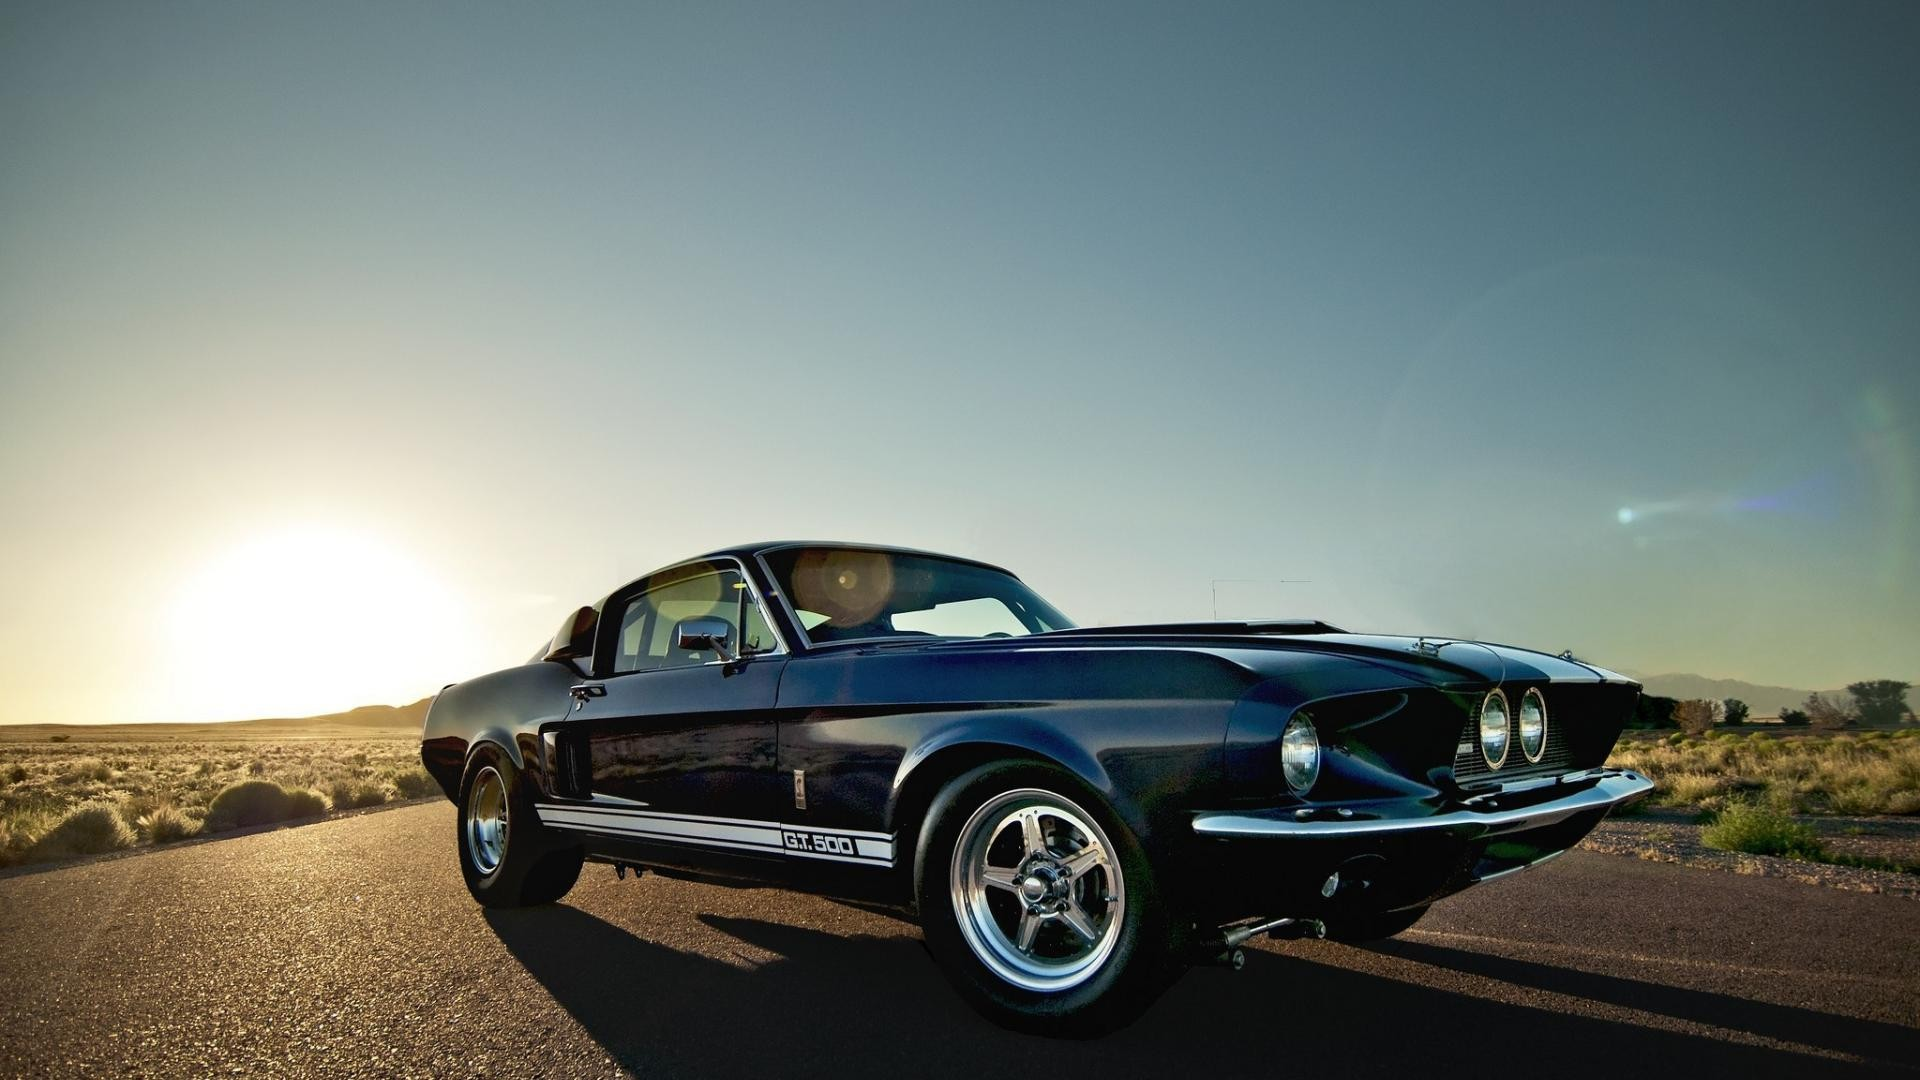 Mustang Car Full Hd Wallpapers Amazing Wallpaperz 1920x1080